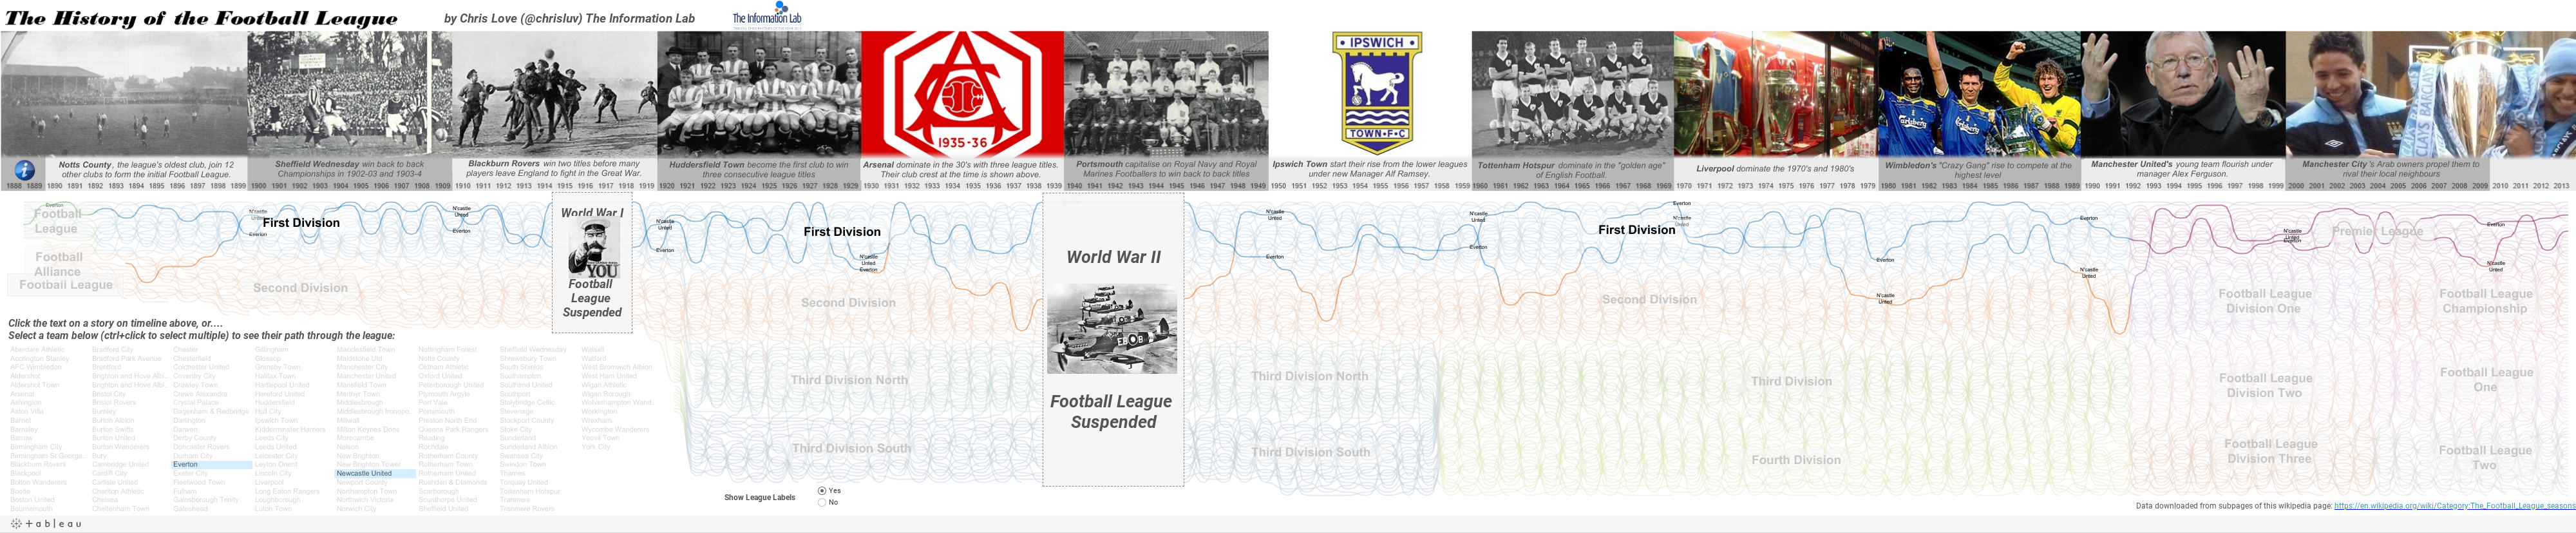 History of the Football League